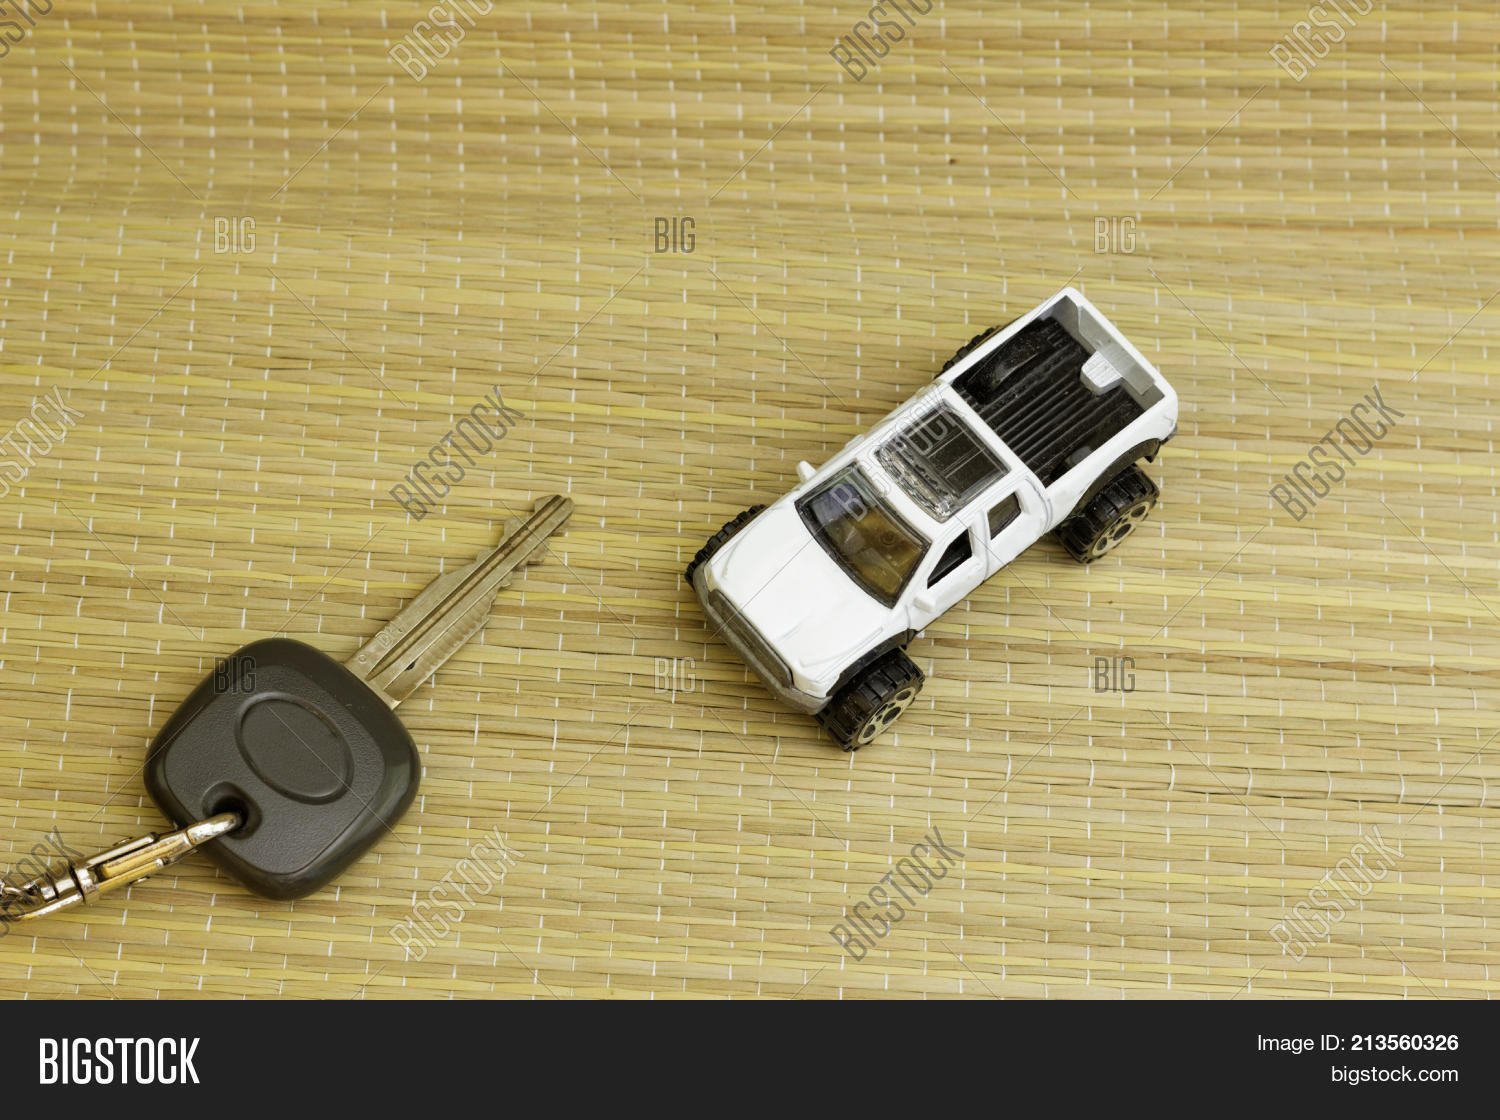 Car Key Mini White Image Photo Free Trial Bigstock